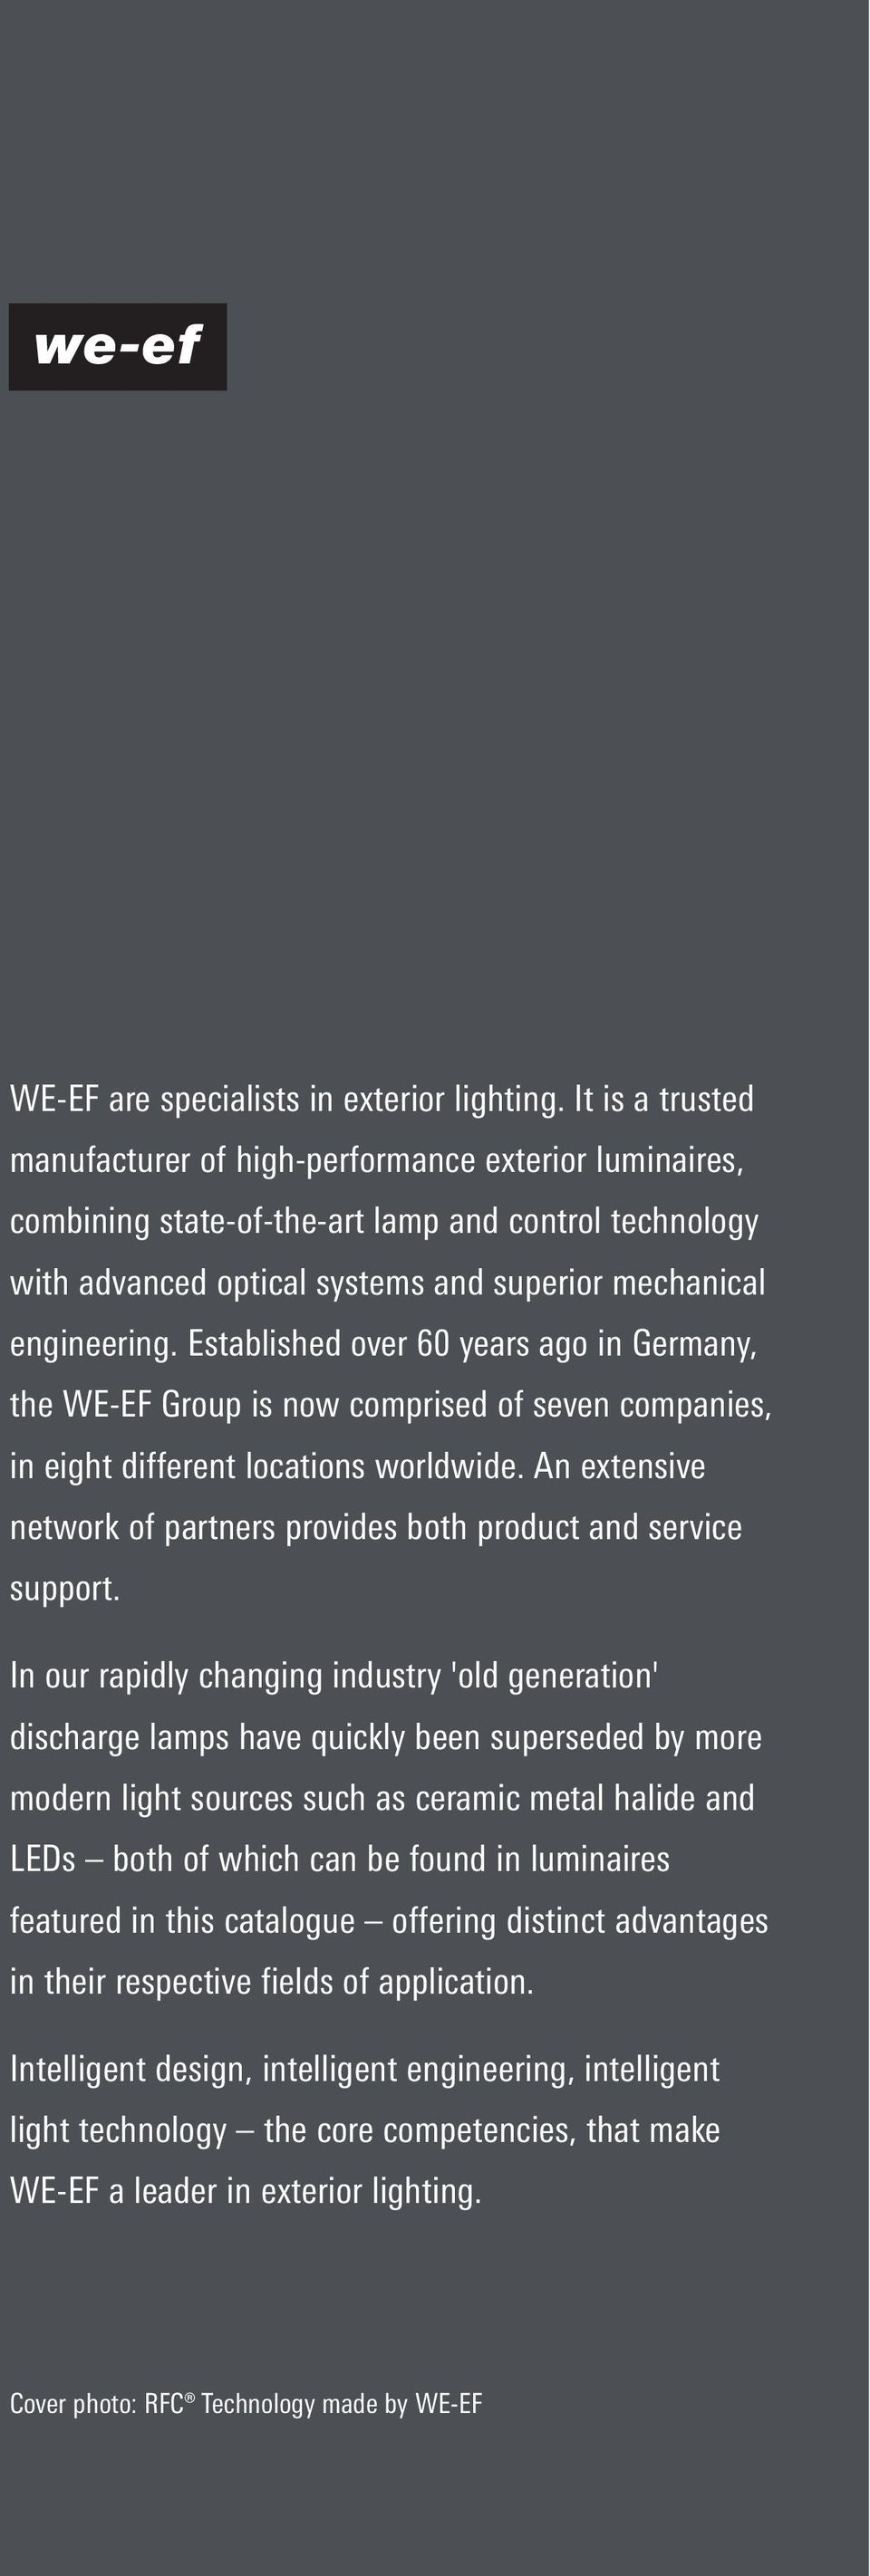 Established over 60 years ago in Germany, the WE-EF Group is now comprised of seven companies, in eight different locations worldwide.